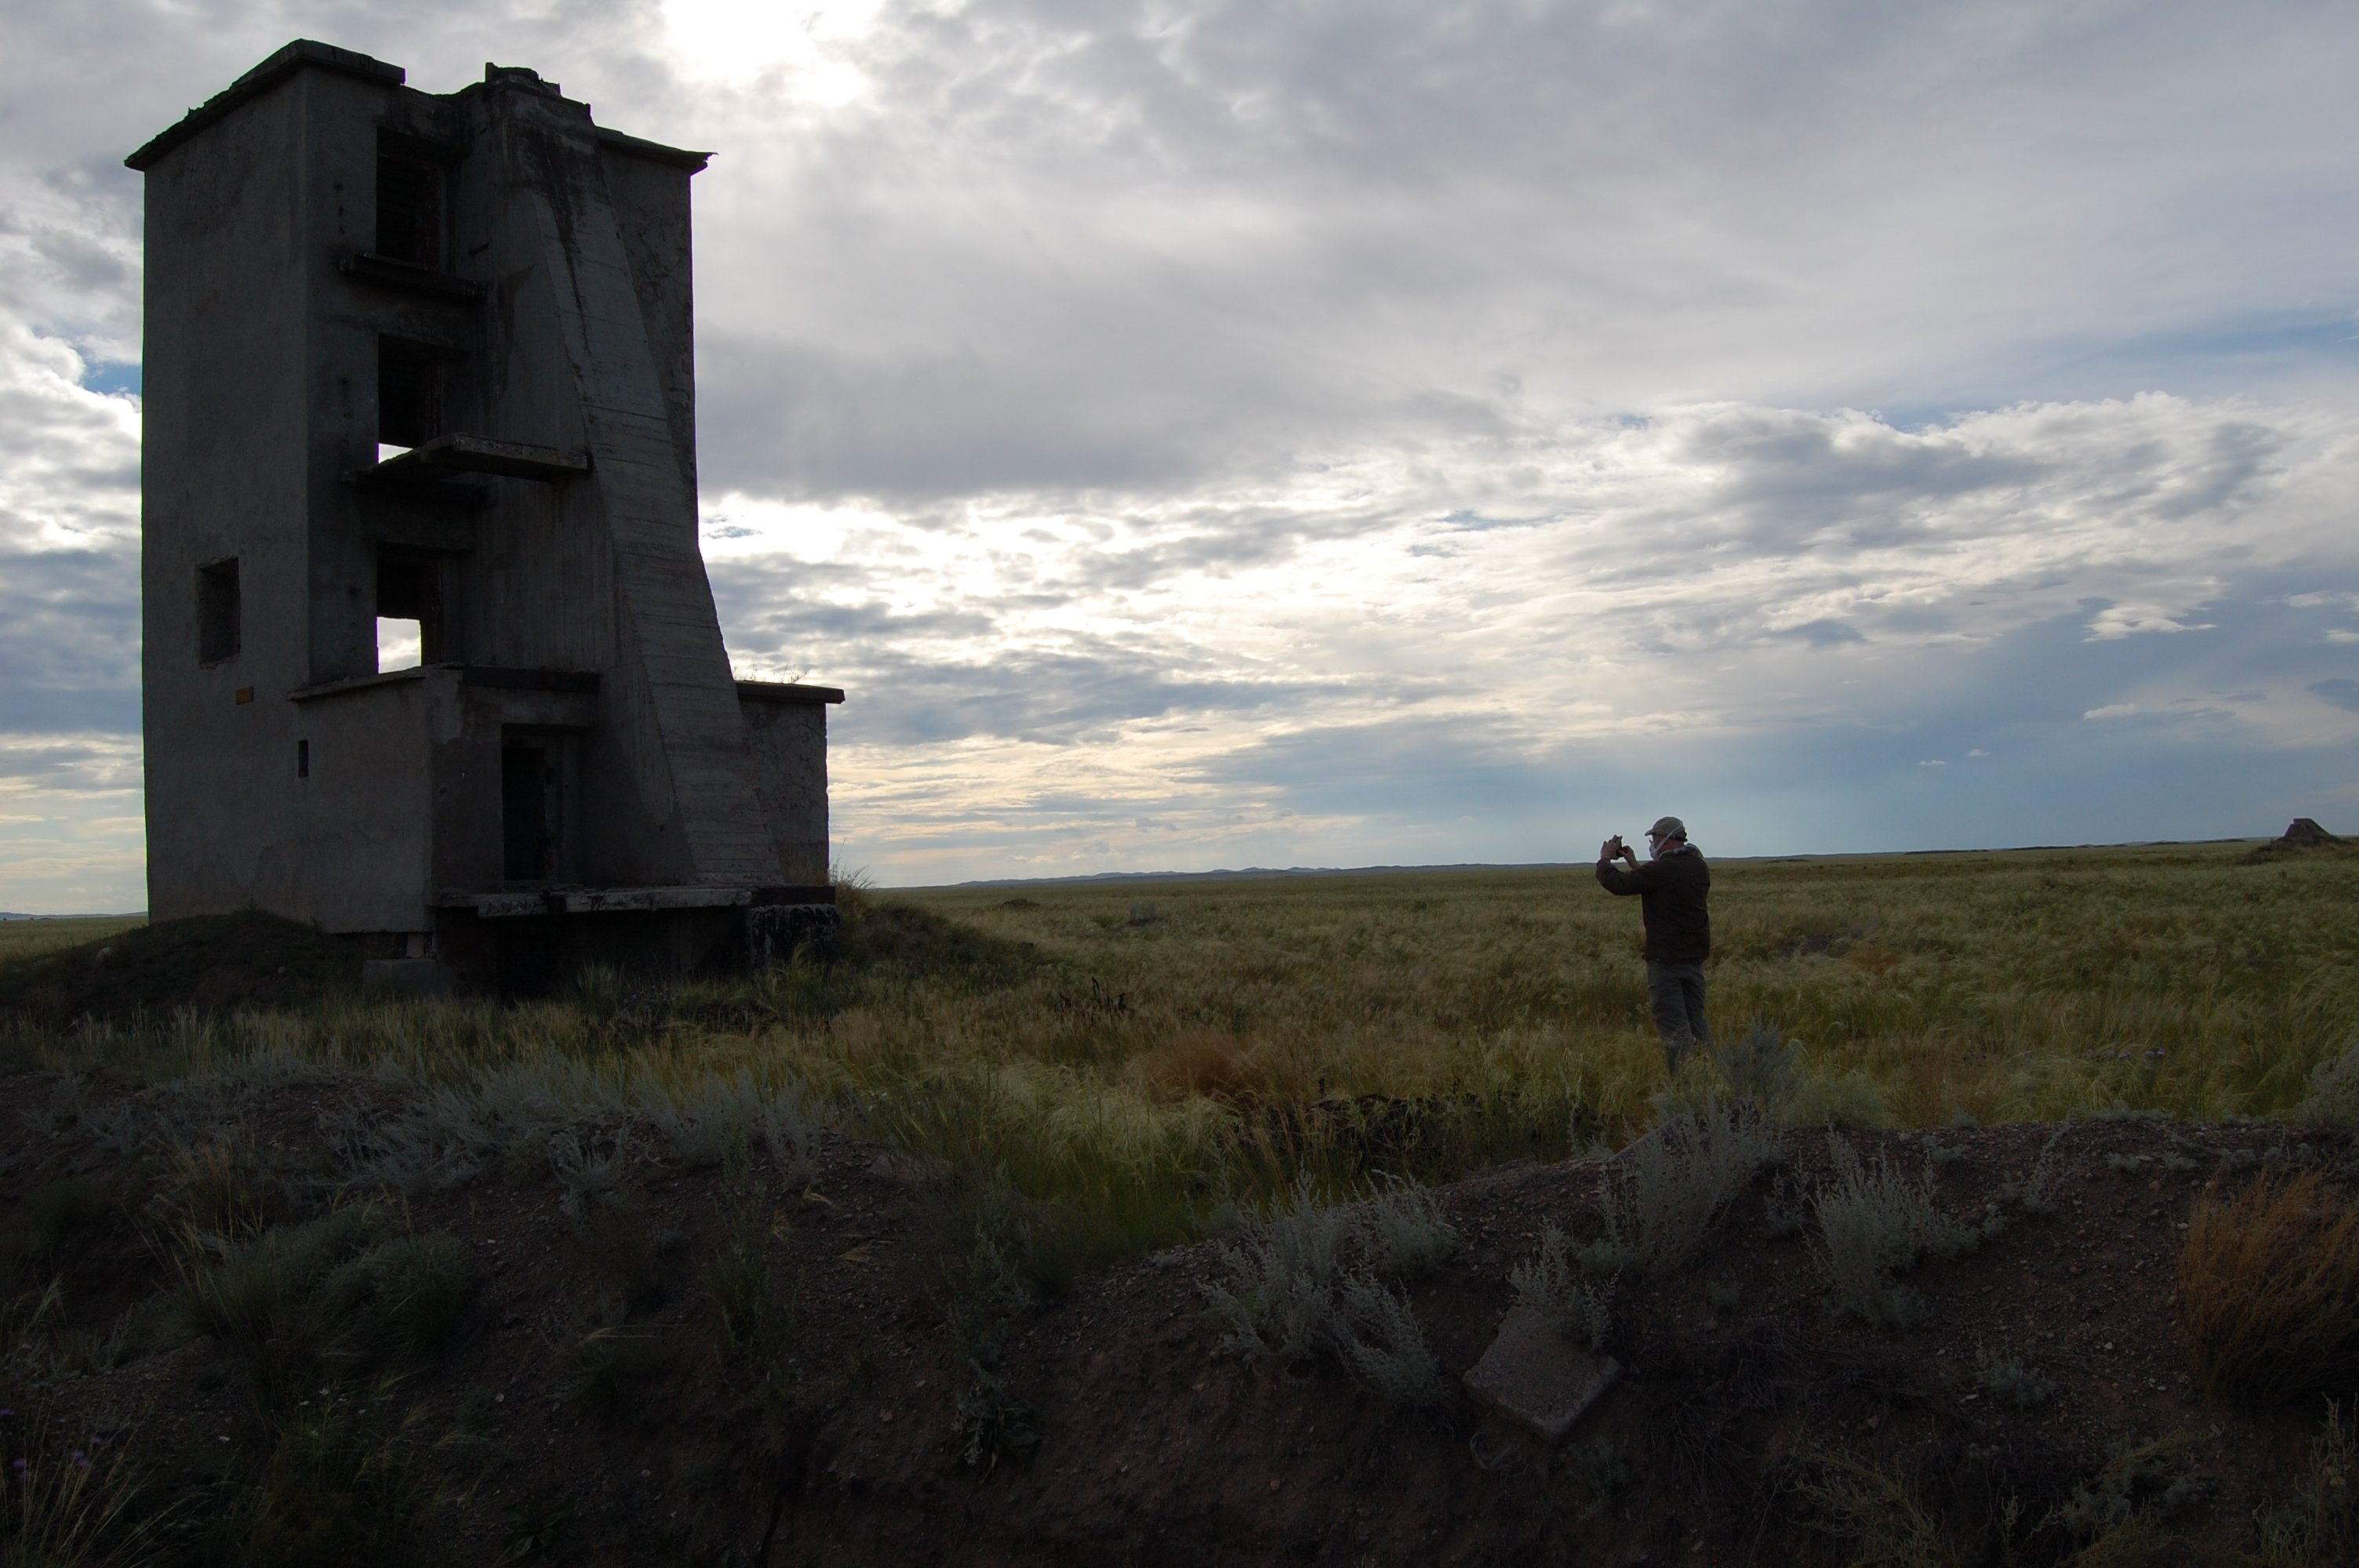 Semipalatinsk Observation Tower